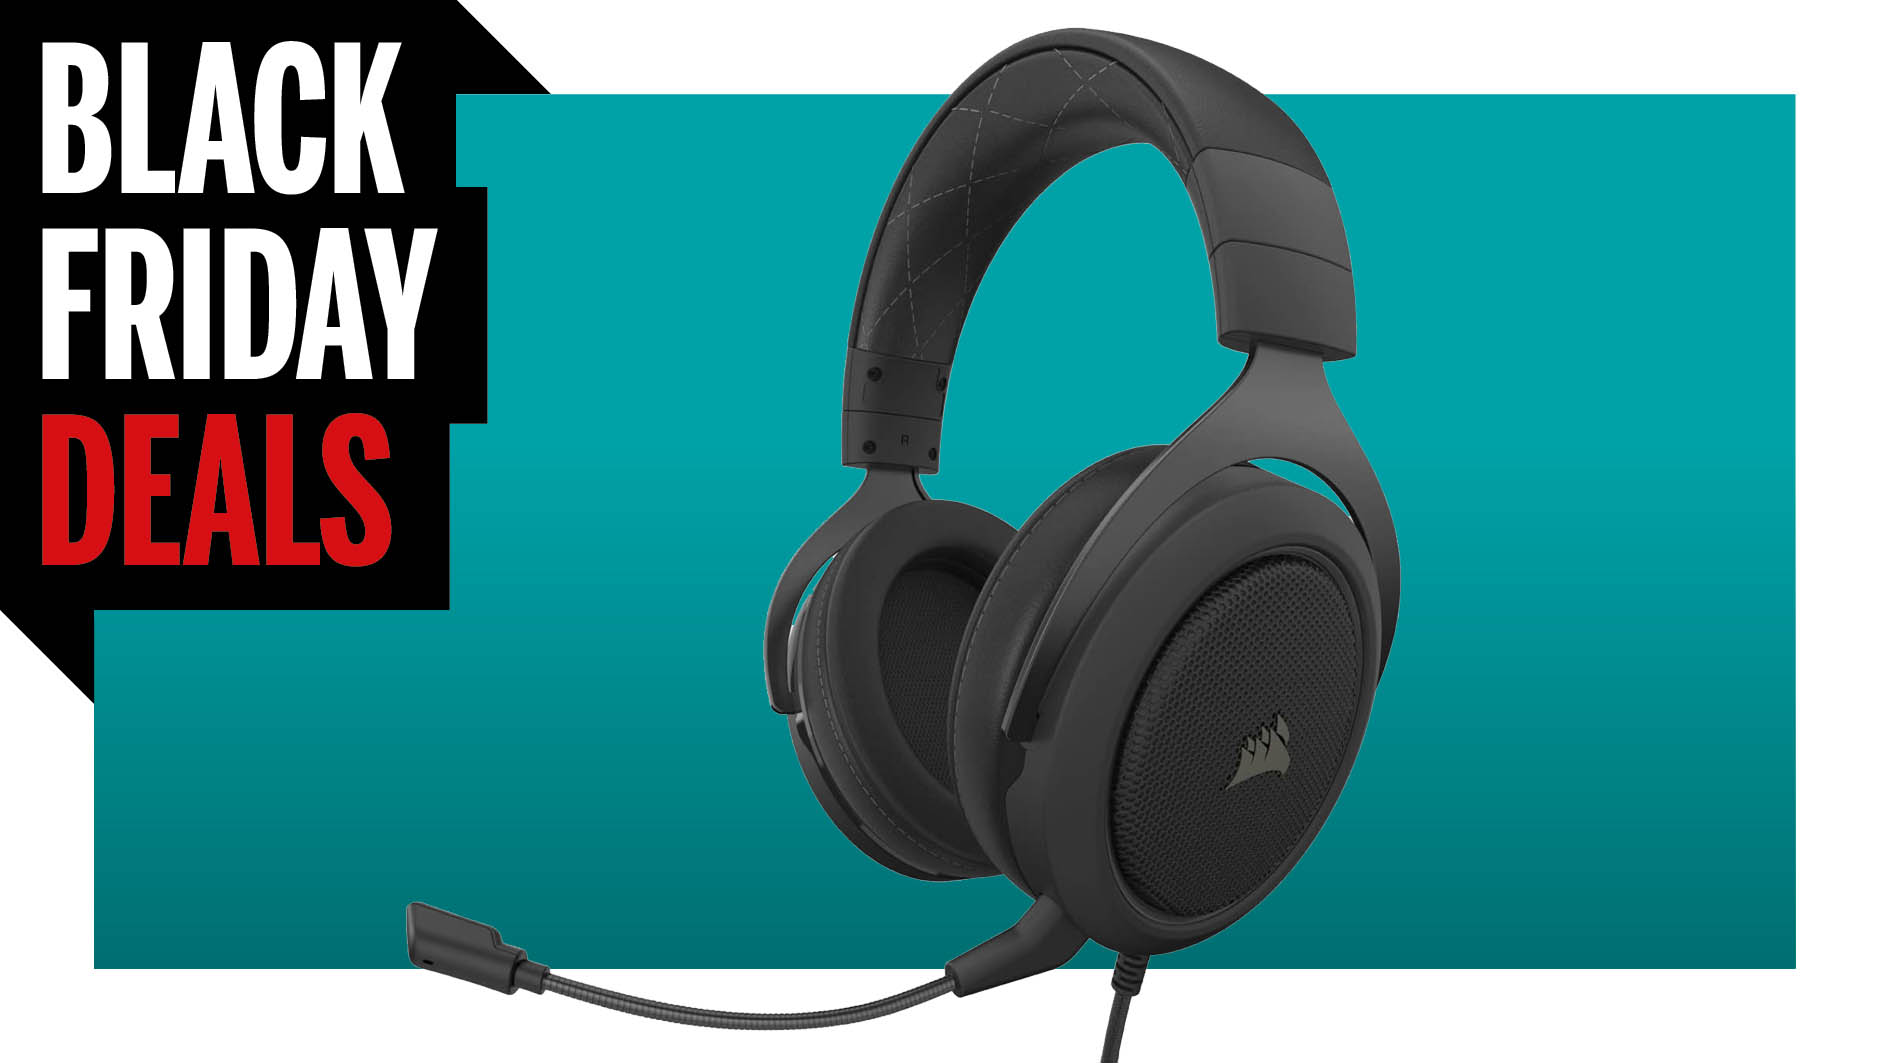 The Corsair HS60 Pro for $40 is an incredible Black Friday gaming headset deal